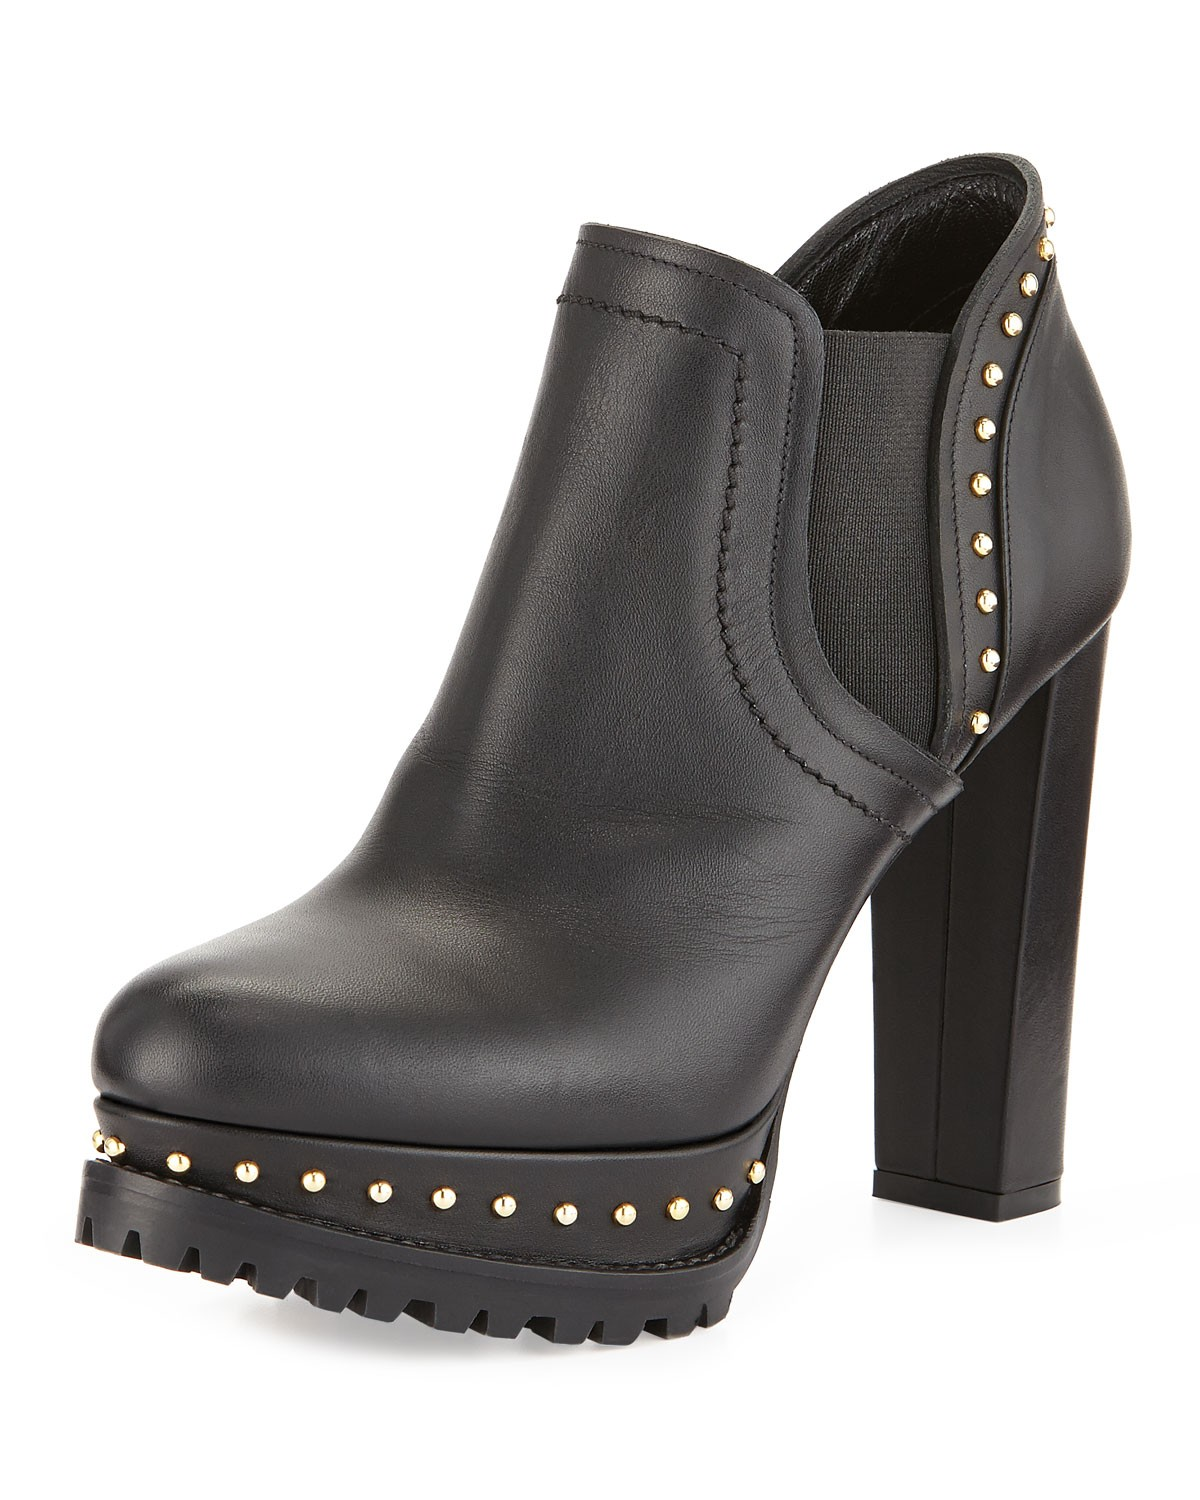 Studded Chelsea Ankle Bootie, Black - Alexander McQueen - Black (35.0B/5.0B)